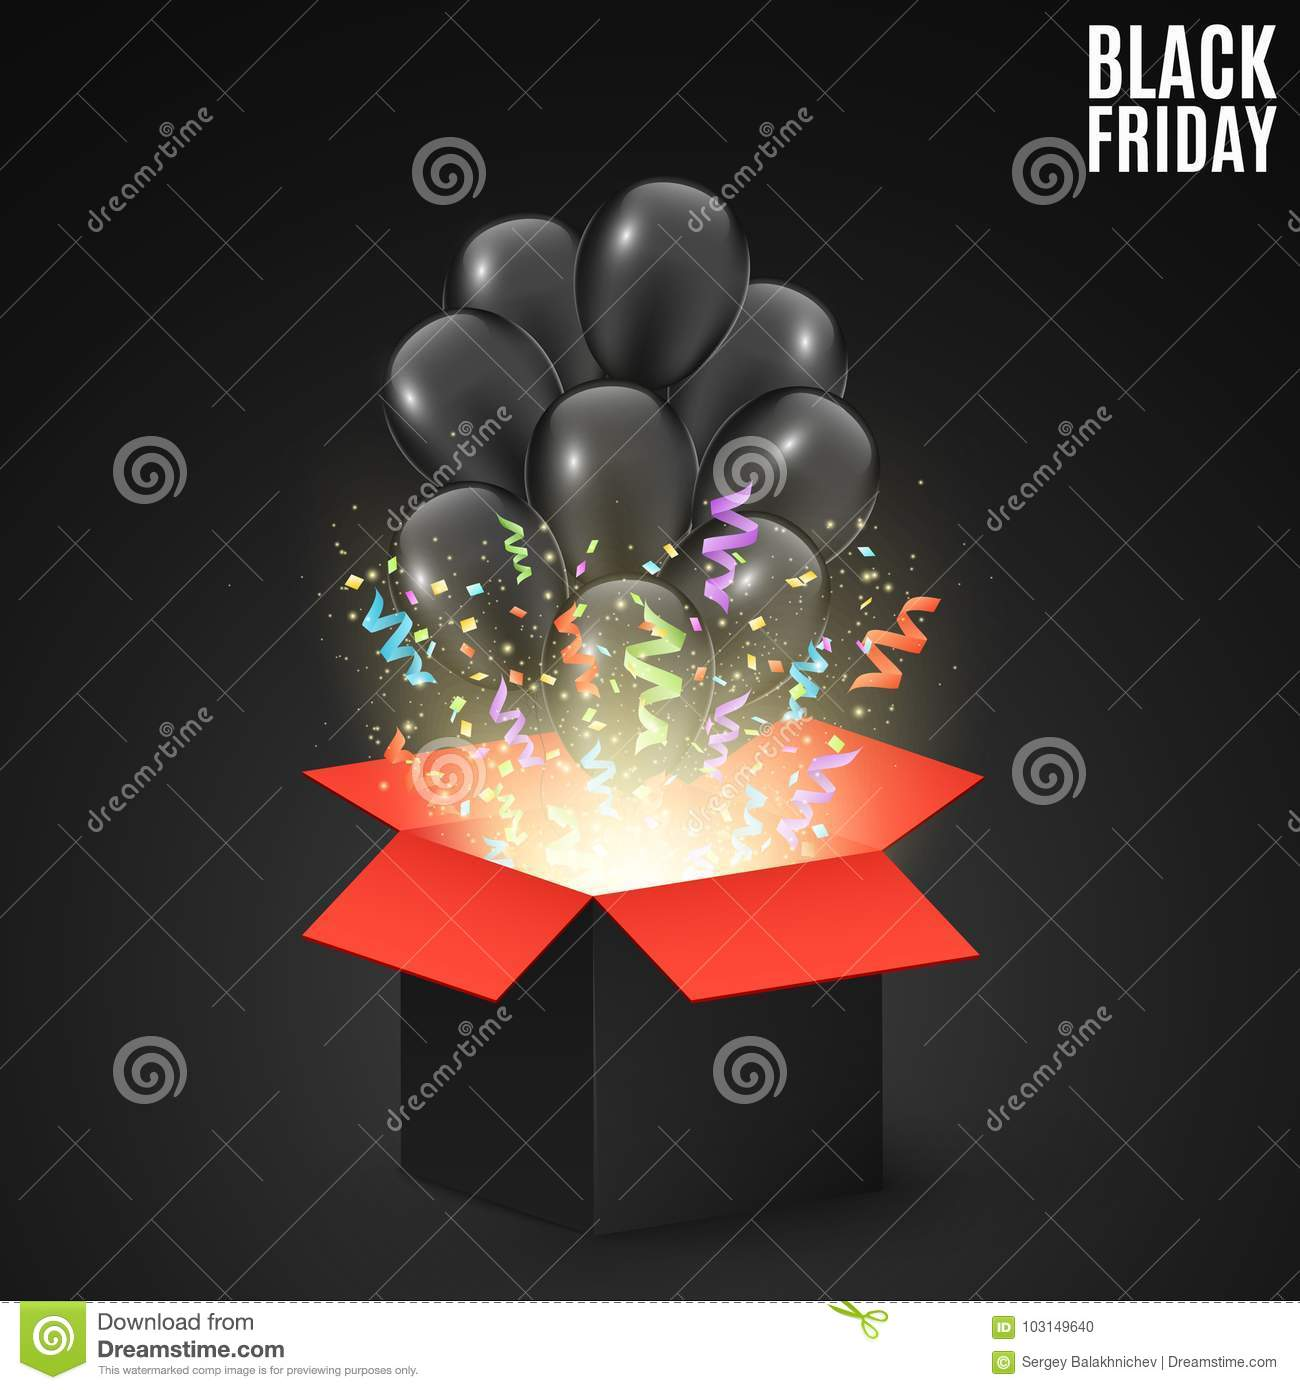 Black red gift box on a dark background with black balloons. Background for sale on a Black Friday. Colorful confetti and ribbons.